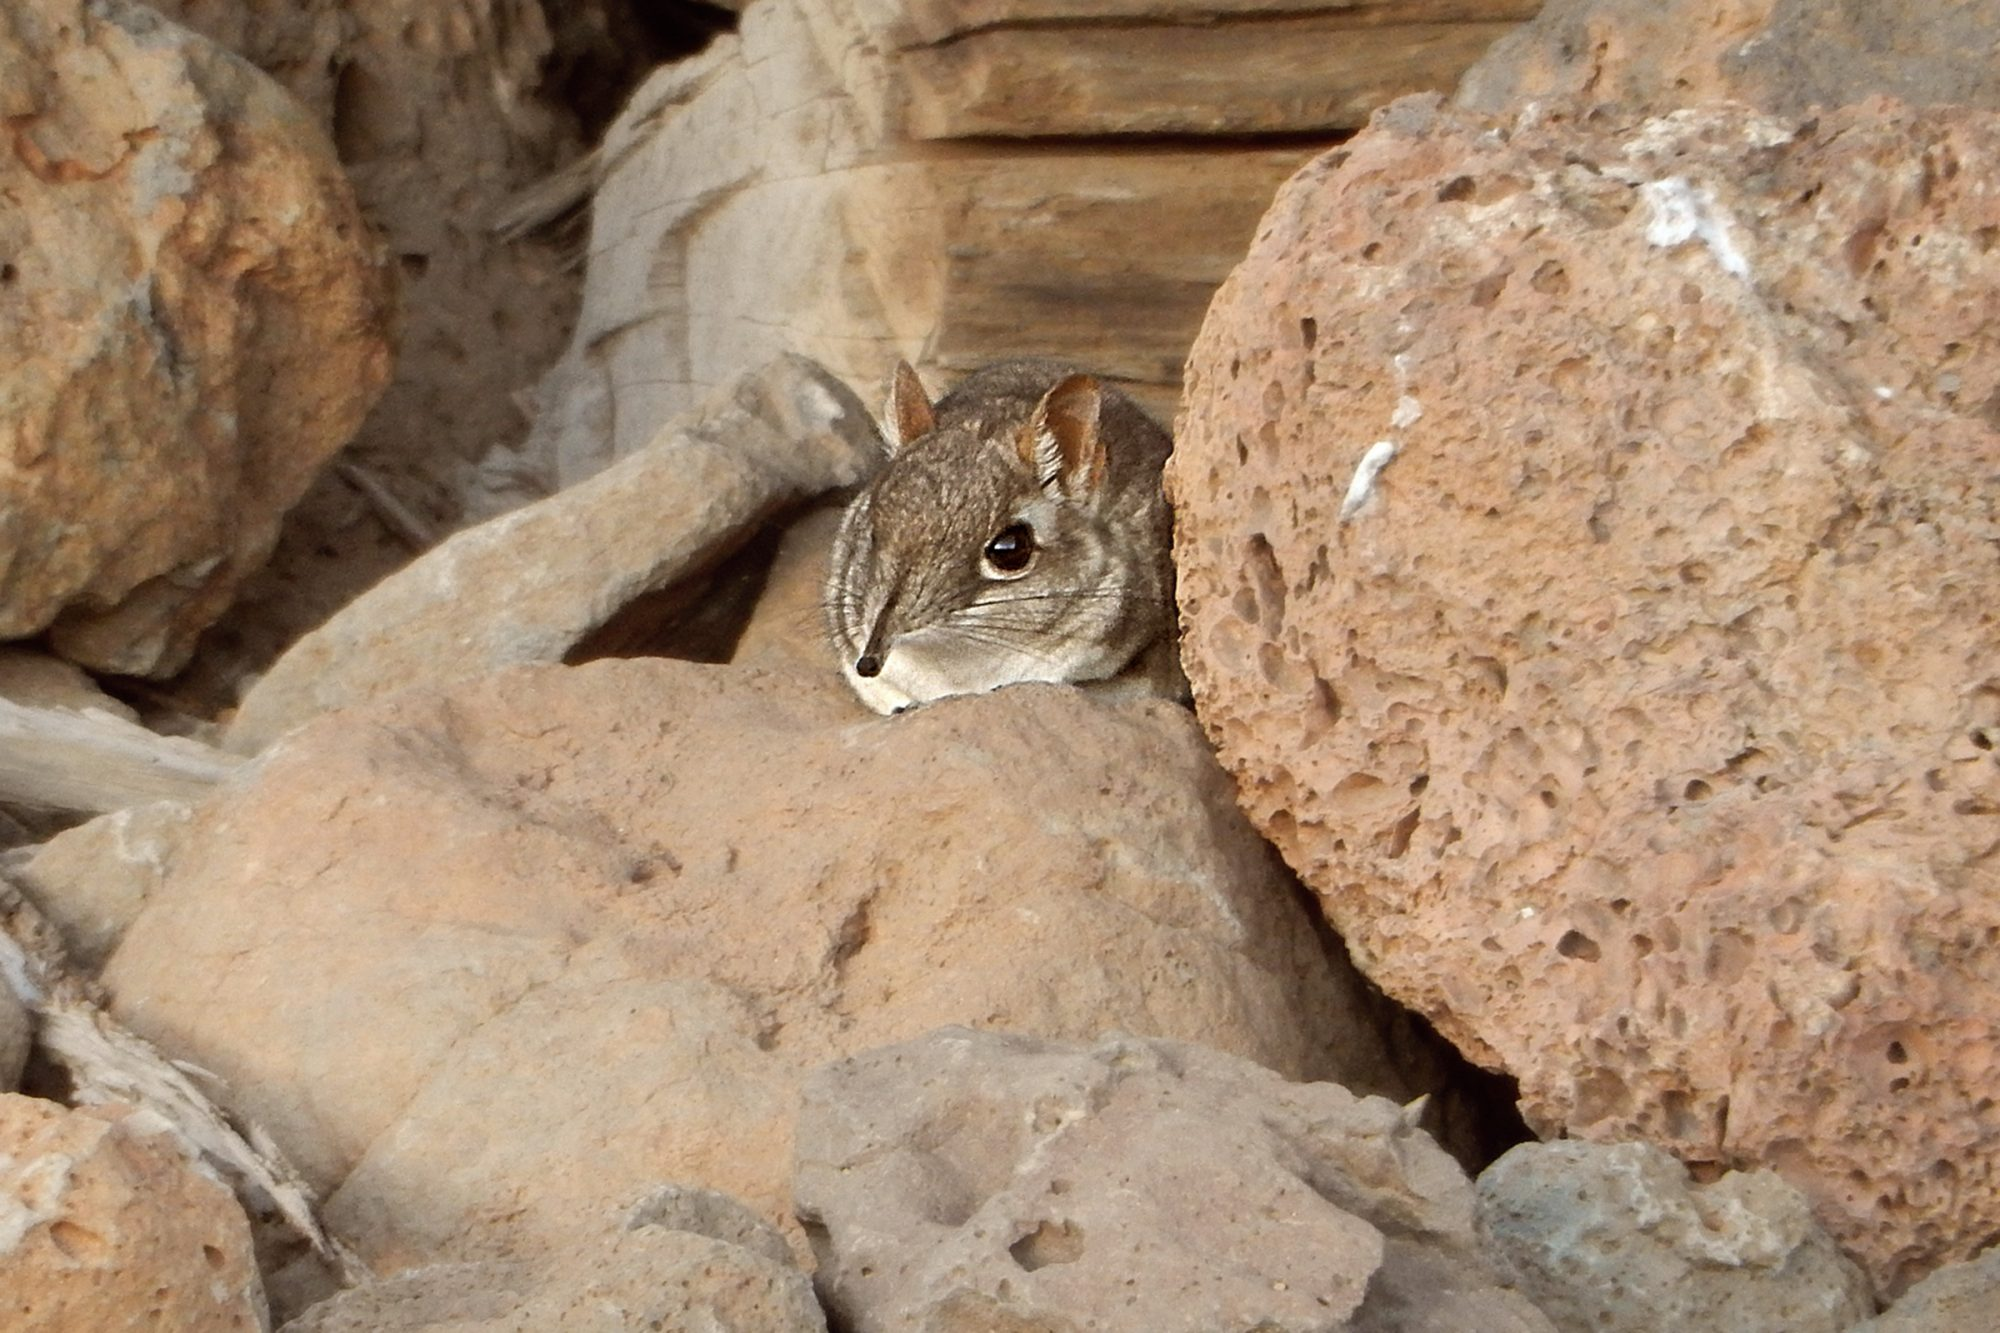 The first-ever photo of a live Somali Sengi for scientific documentation